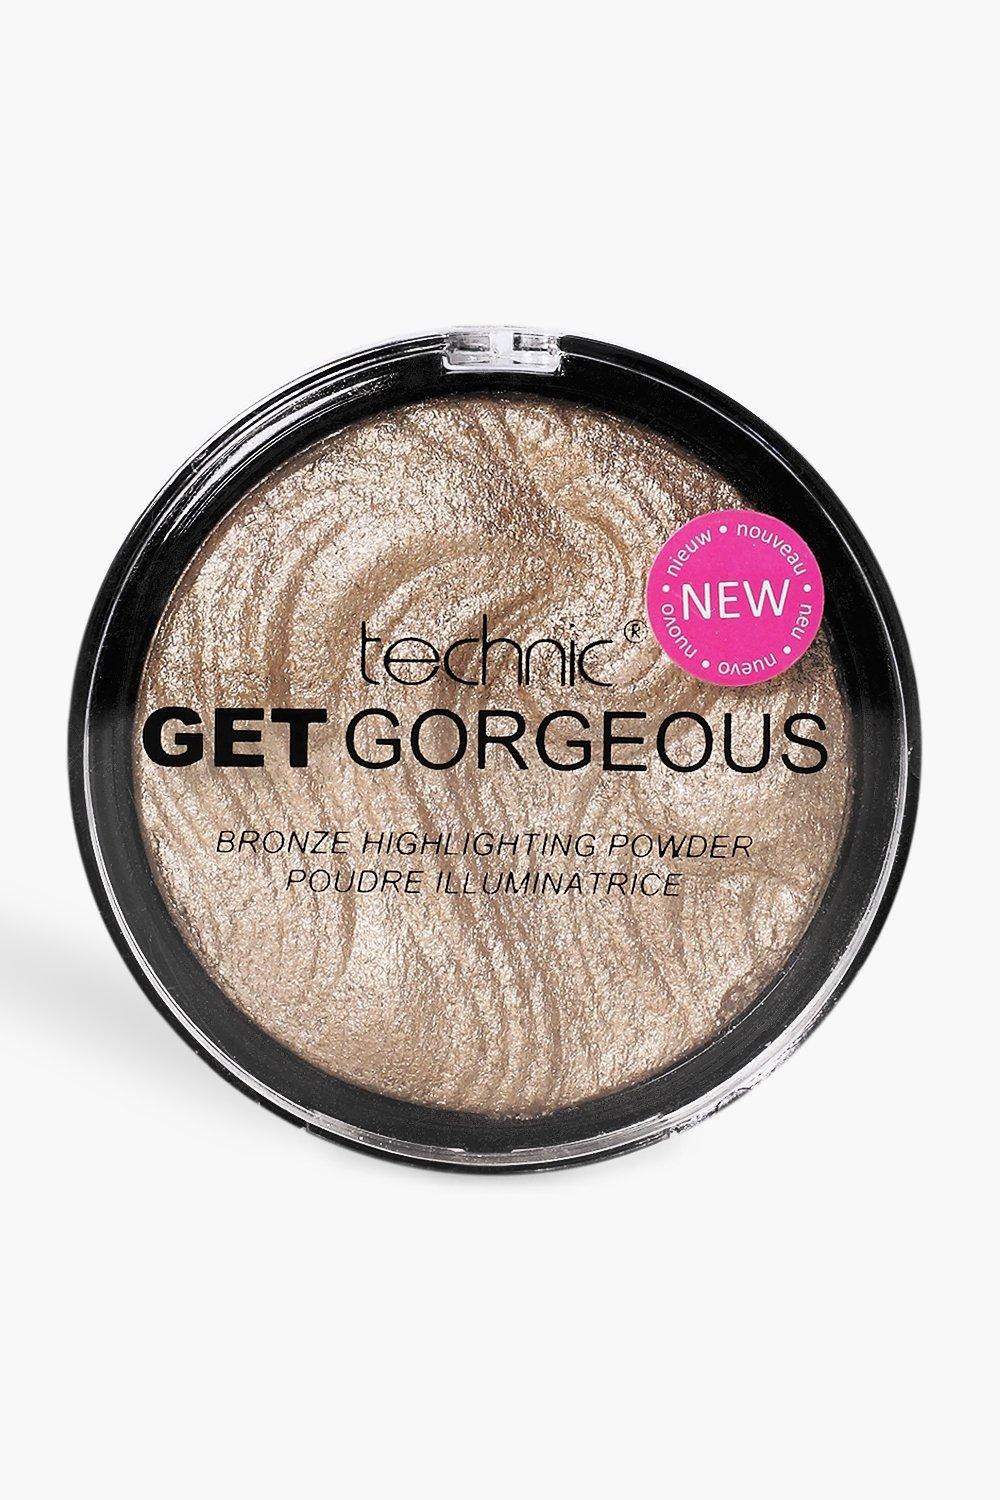 Technic Womens Technic Get Gorgeous Bronzing Highlighter - Brown - One Size, Brown